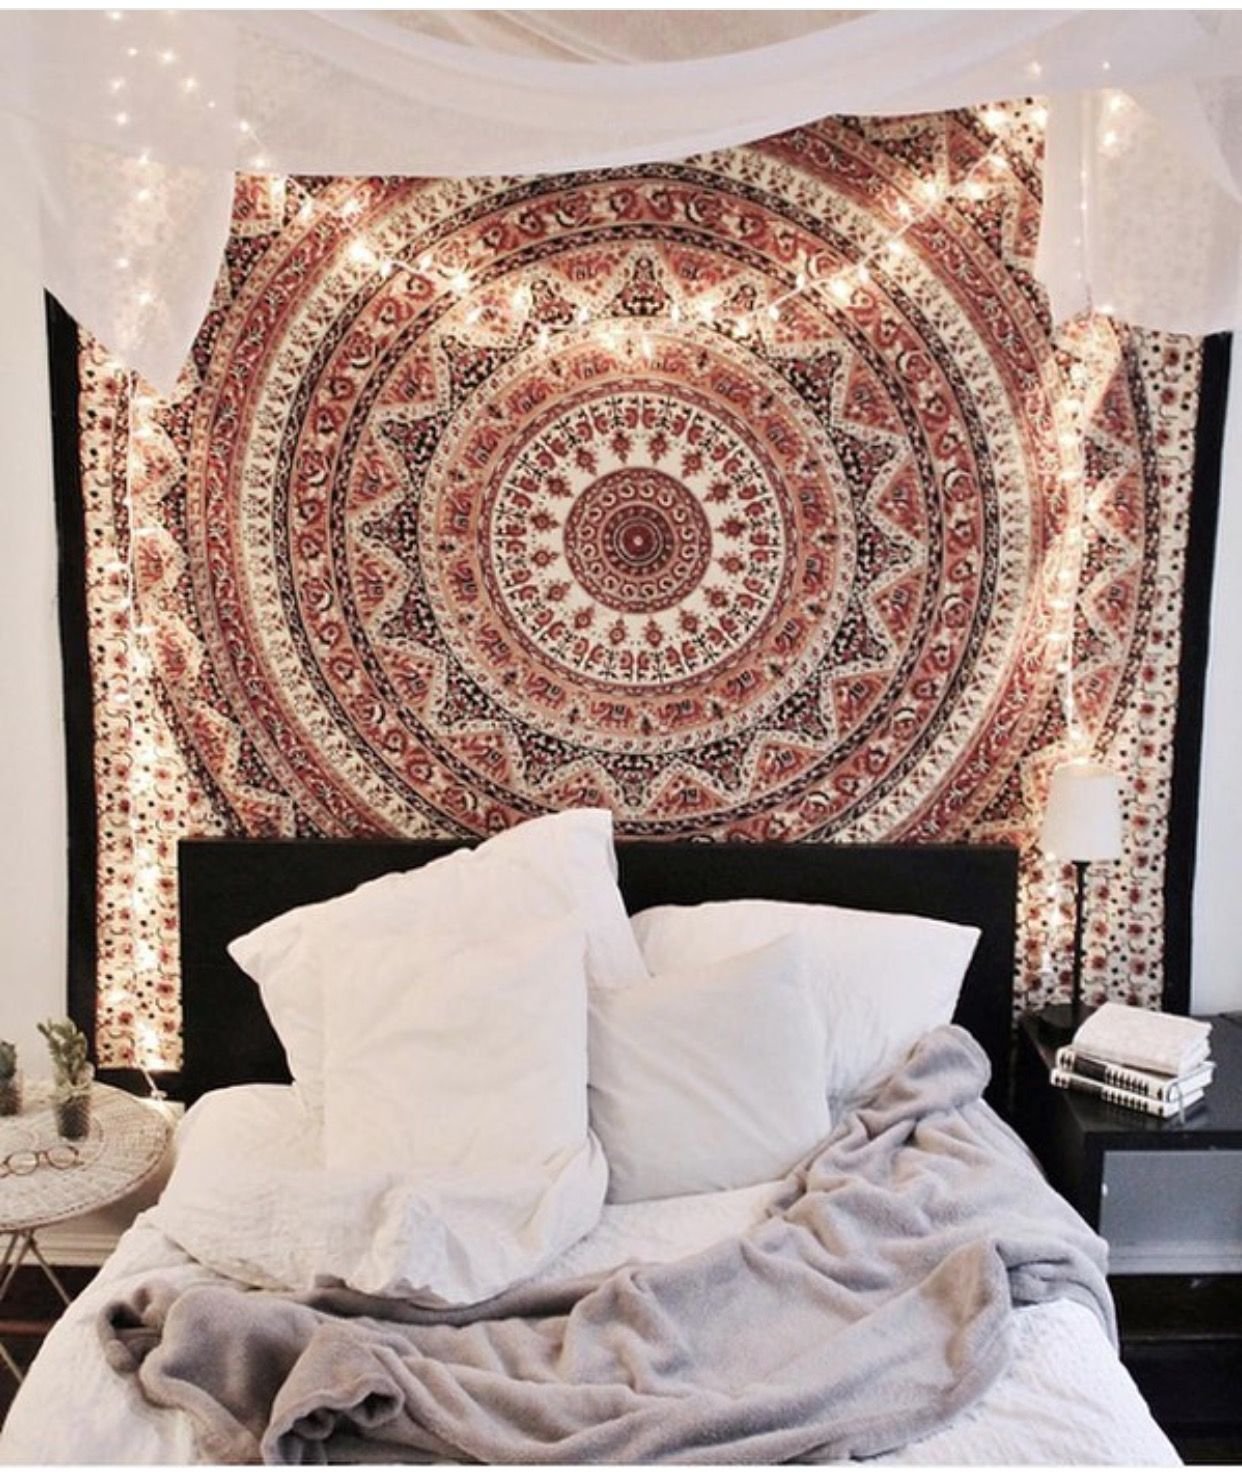 Urban outfitters bedroom tapestry - Find This Pin And More On H O M E Tapestries And Fairy Lights